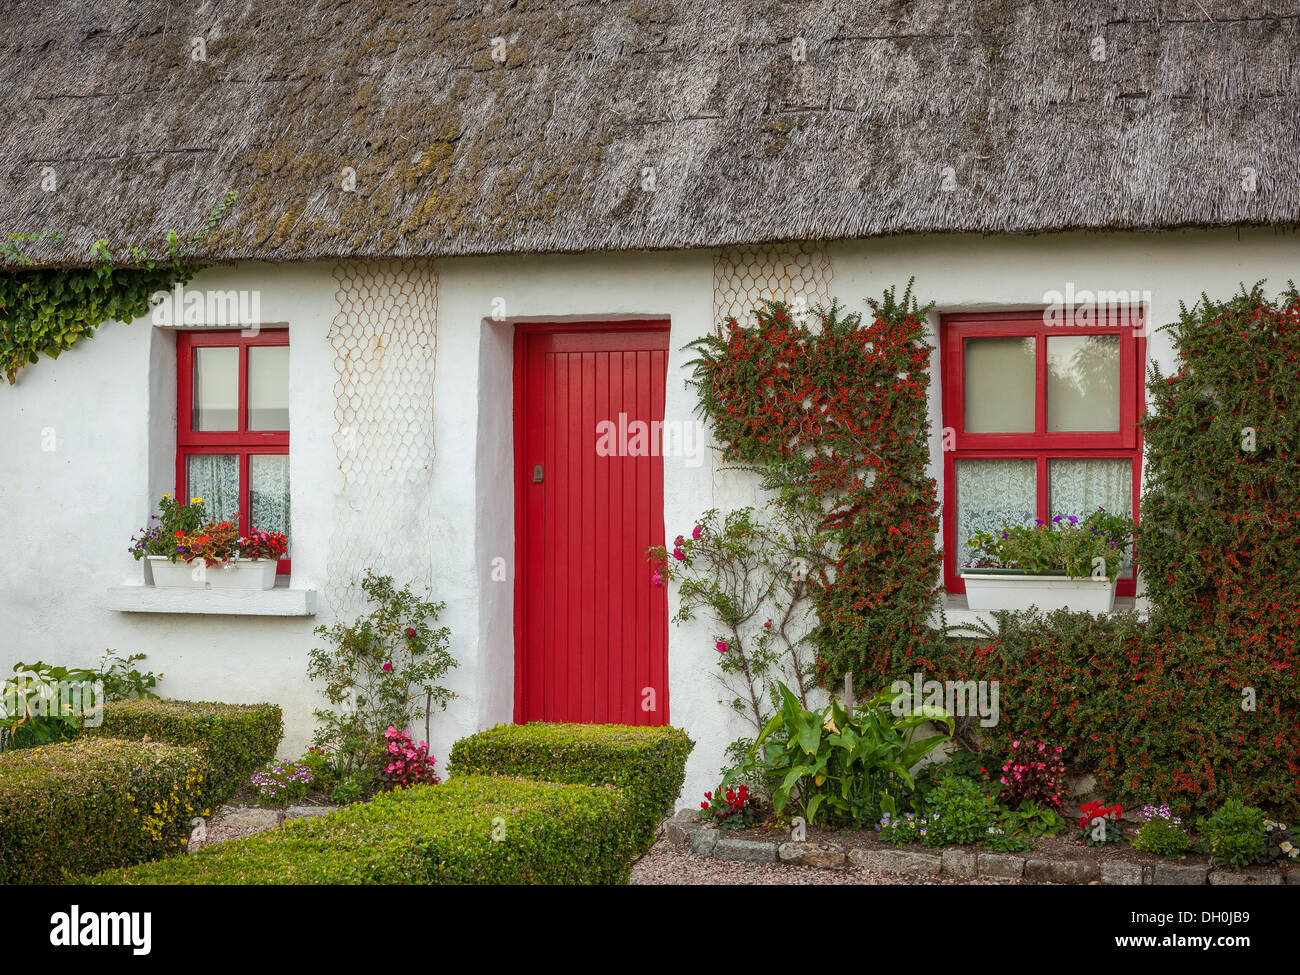 County Galway Ireland Thatched Roof Cottage With Red